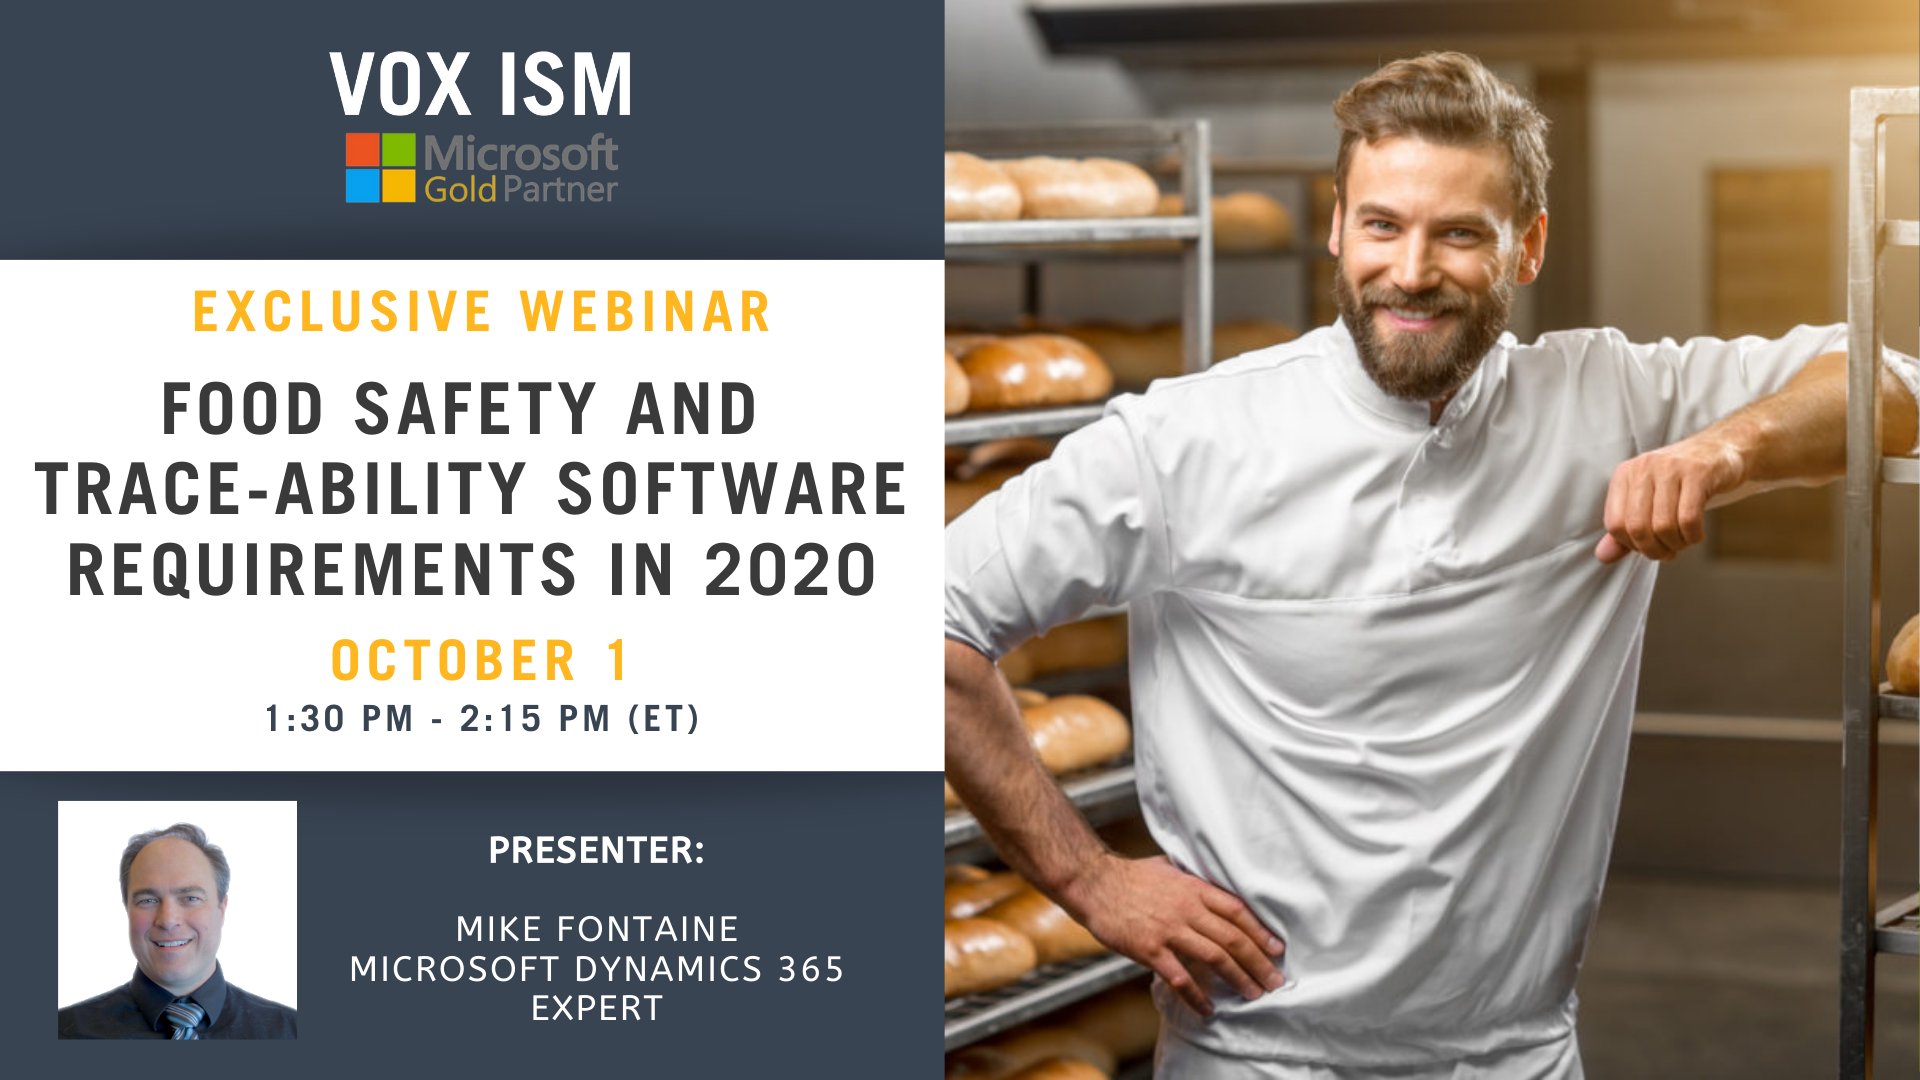 Food Safety and Trace-ability Software Requirements in the world of COVID-19 - October 1 – Webinar